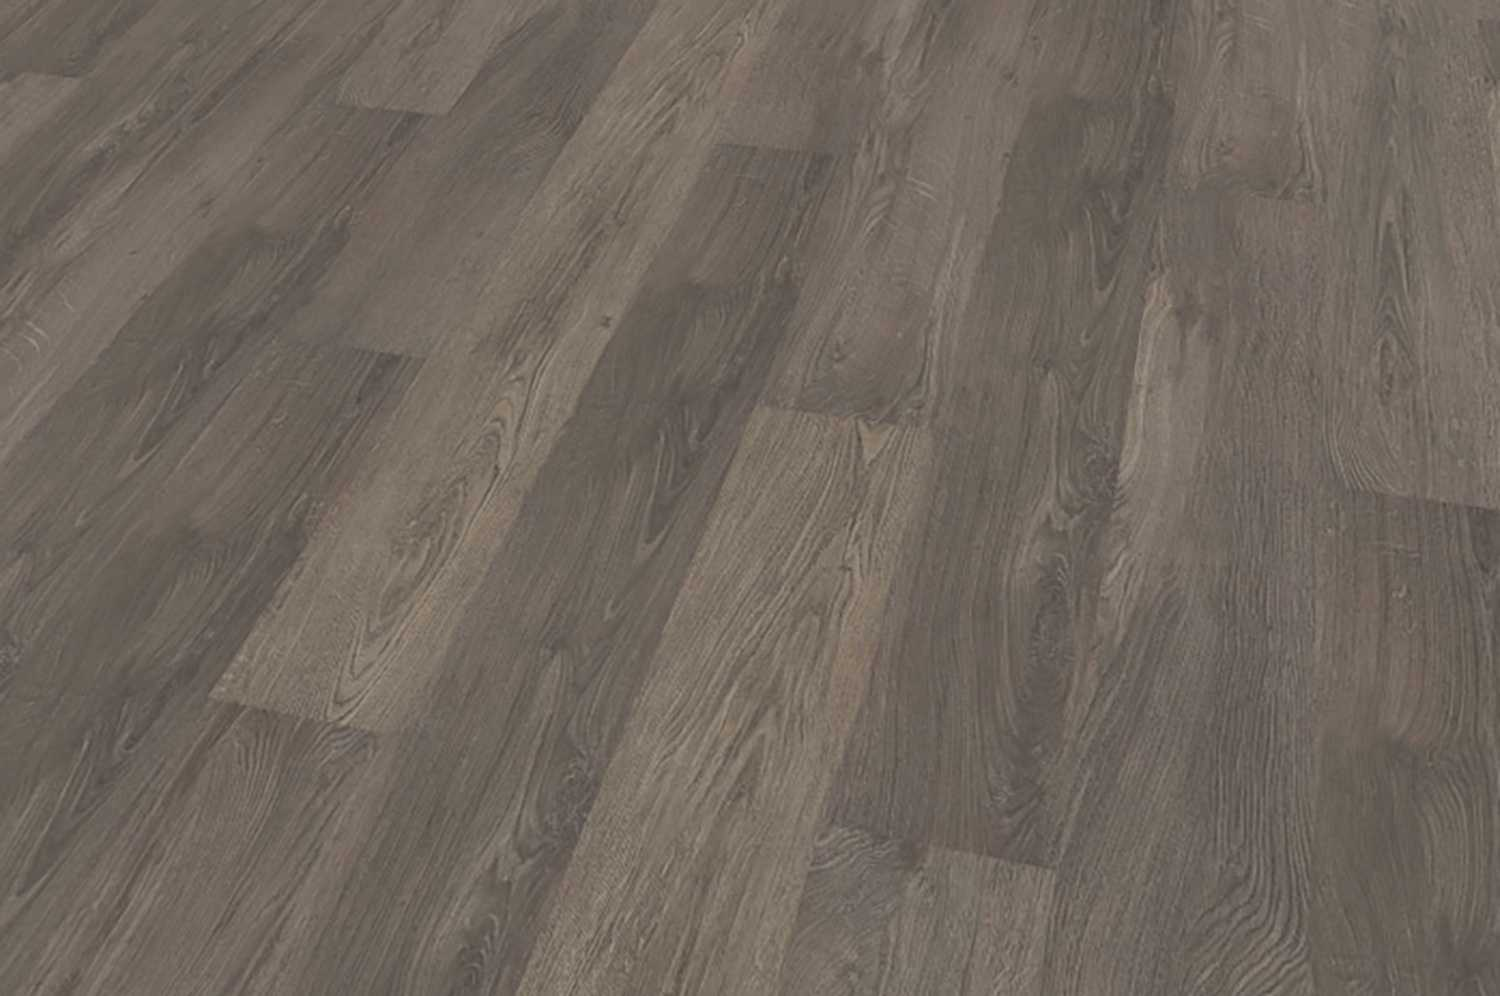 vinyl-mflor-authentic-oak-shumard